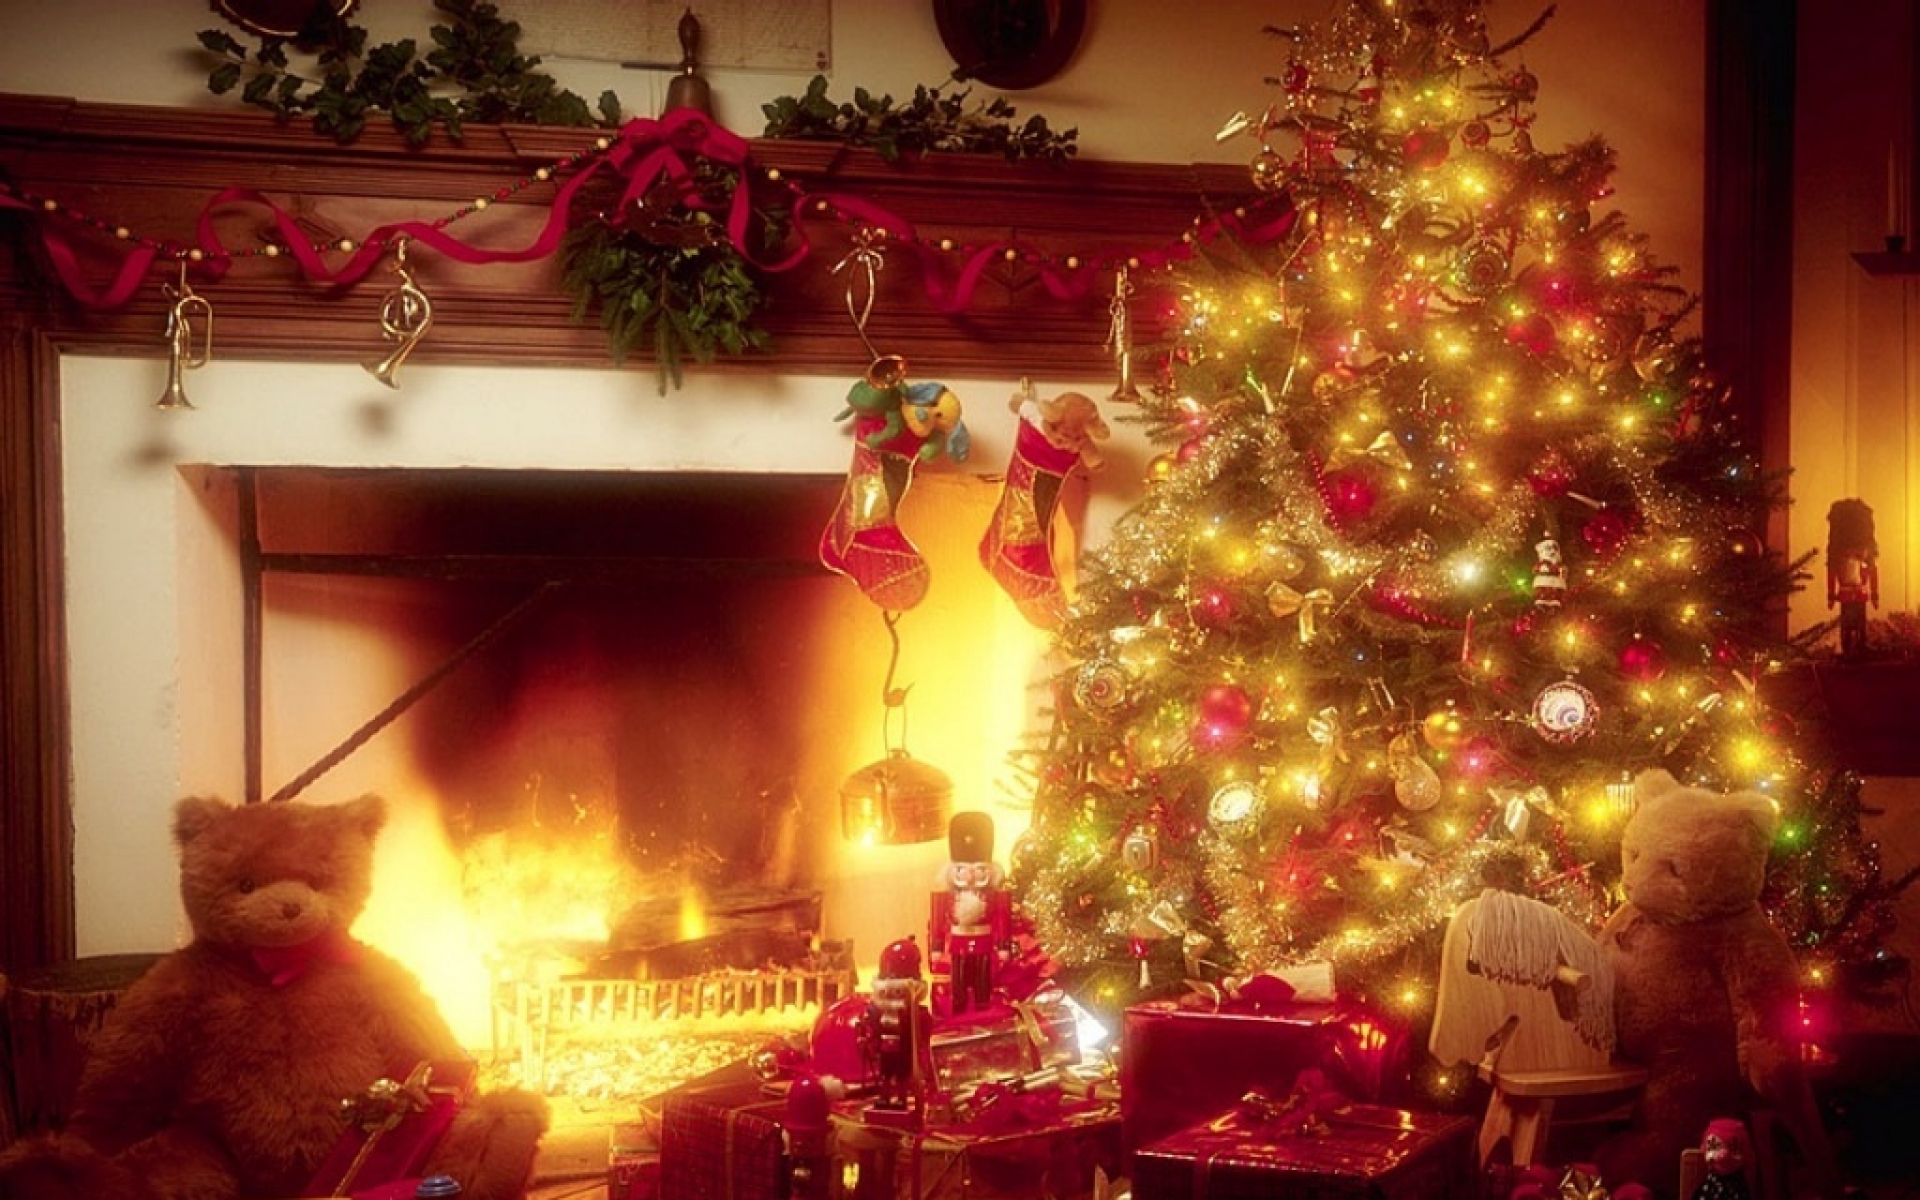 christmas fireplace fire holiday festive decorations f 1463967 1920x1200